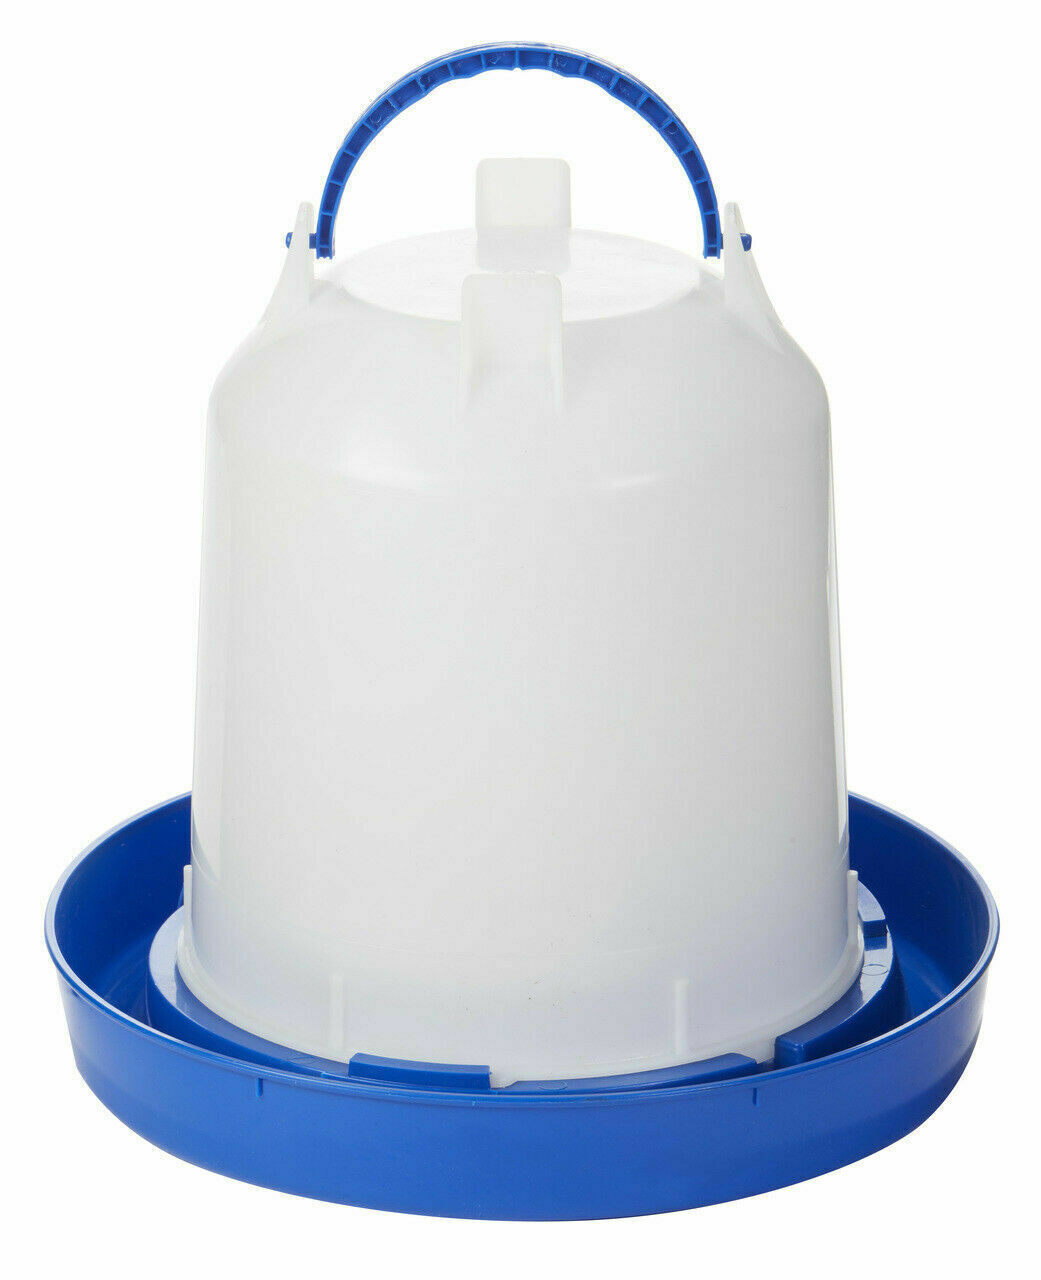 Miller Double-Tuf Hanging Poultry Waterer, 2.5-gallon